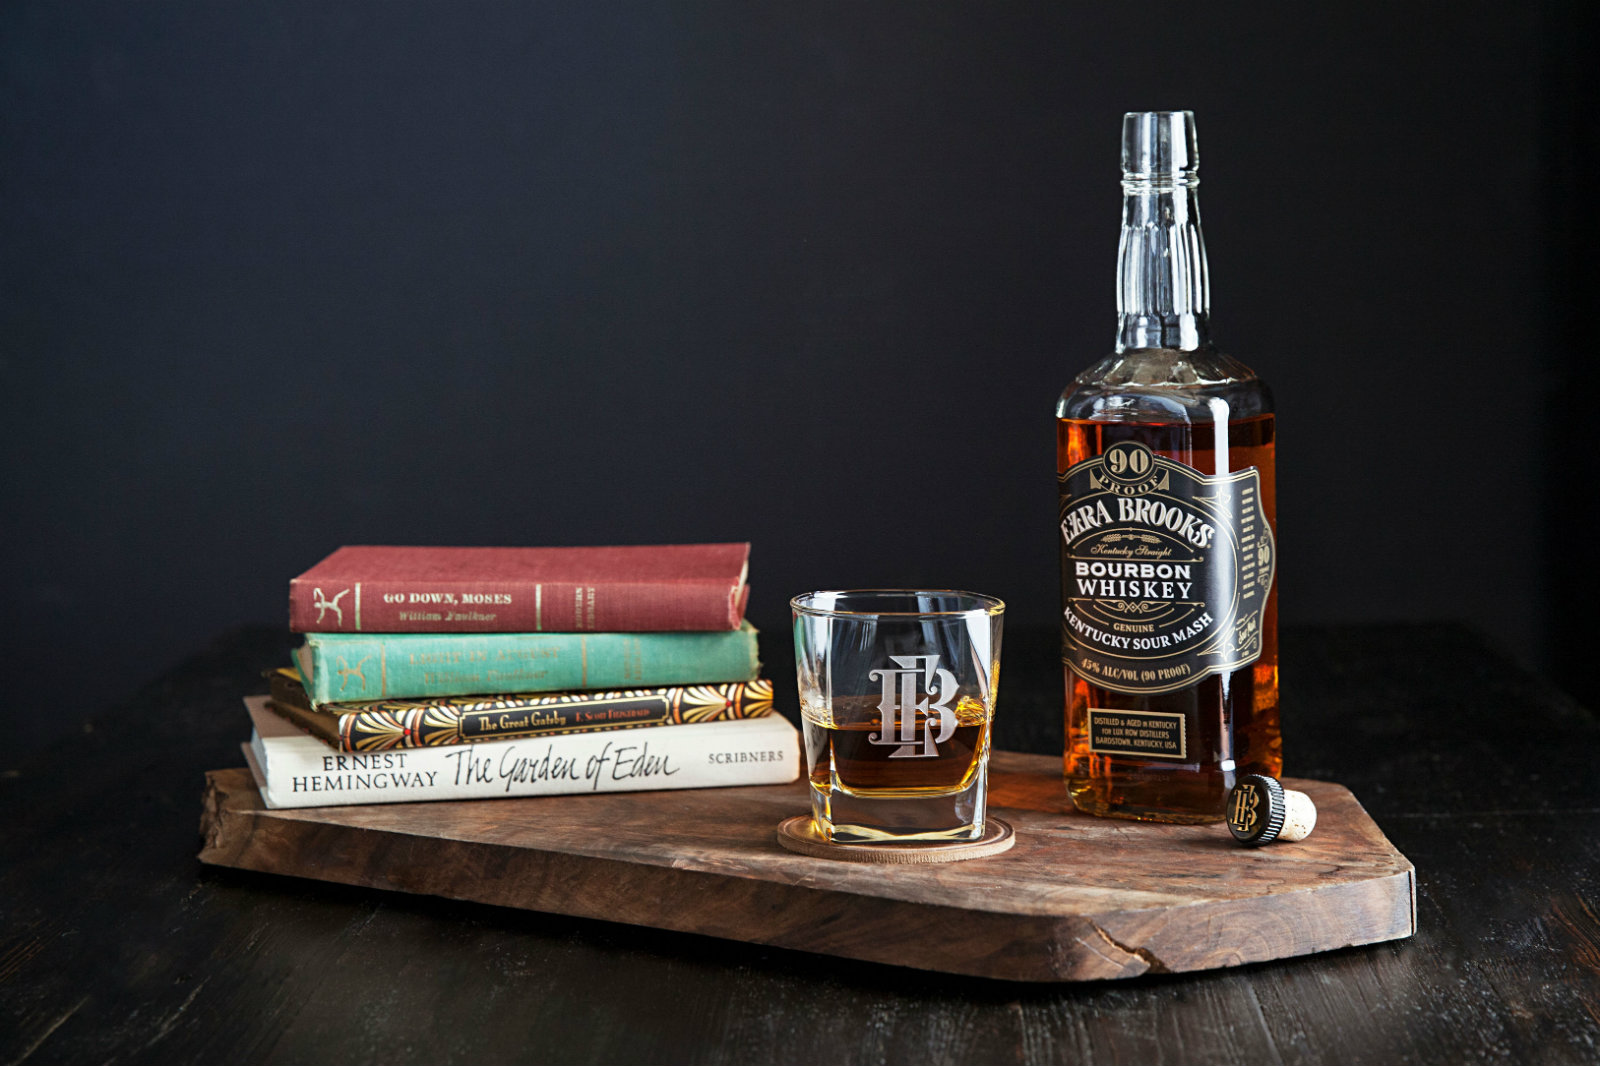 Ezra Brooks bourbon with stack of books